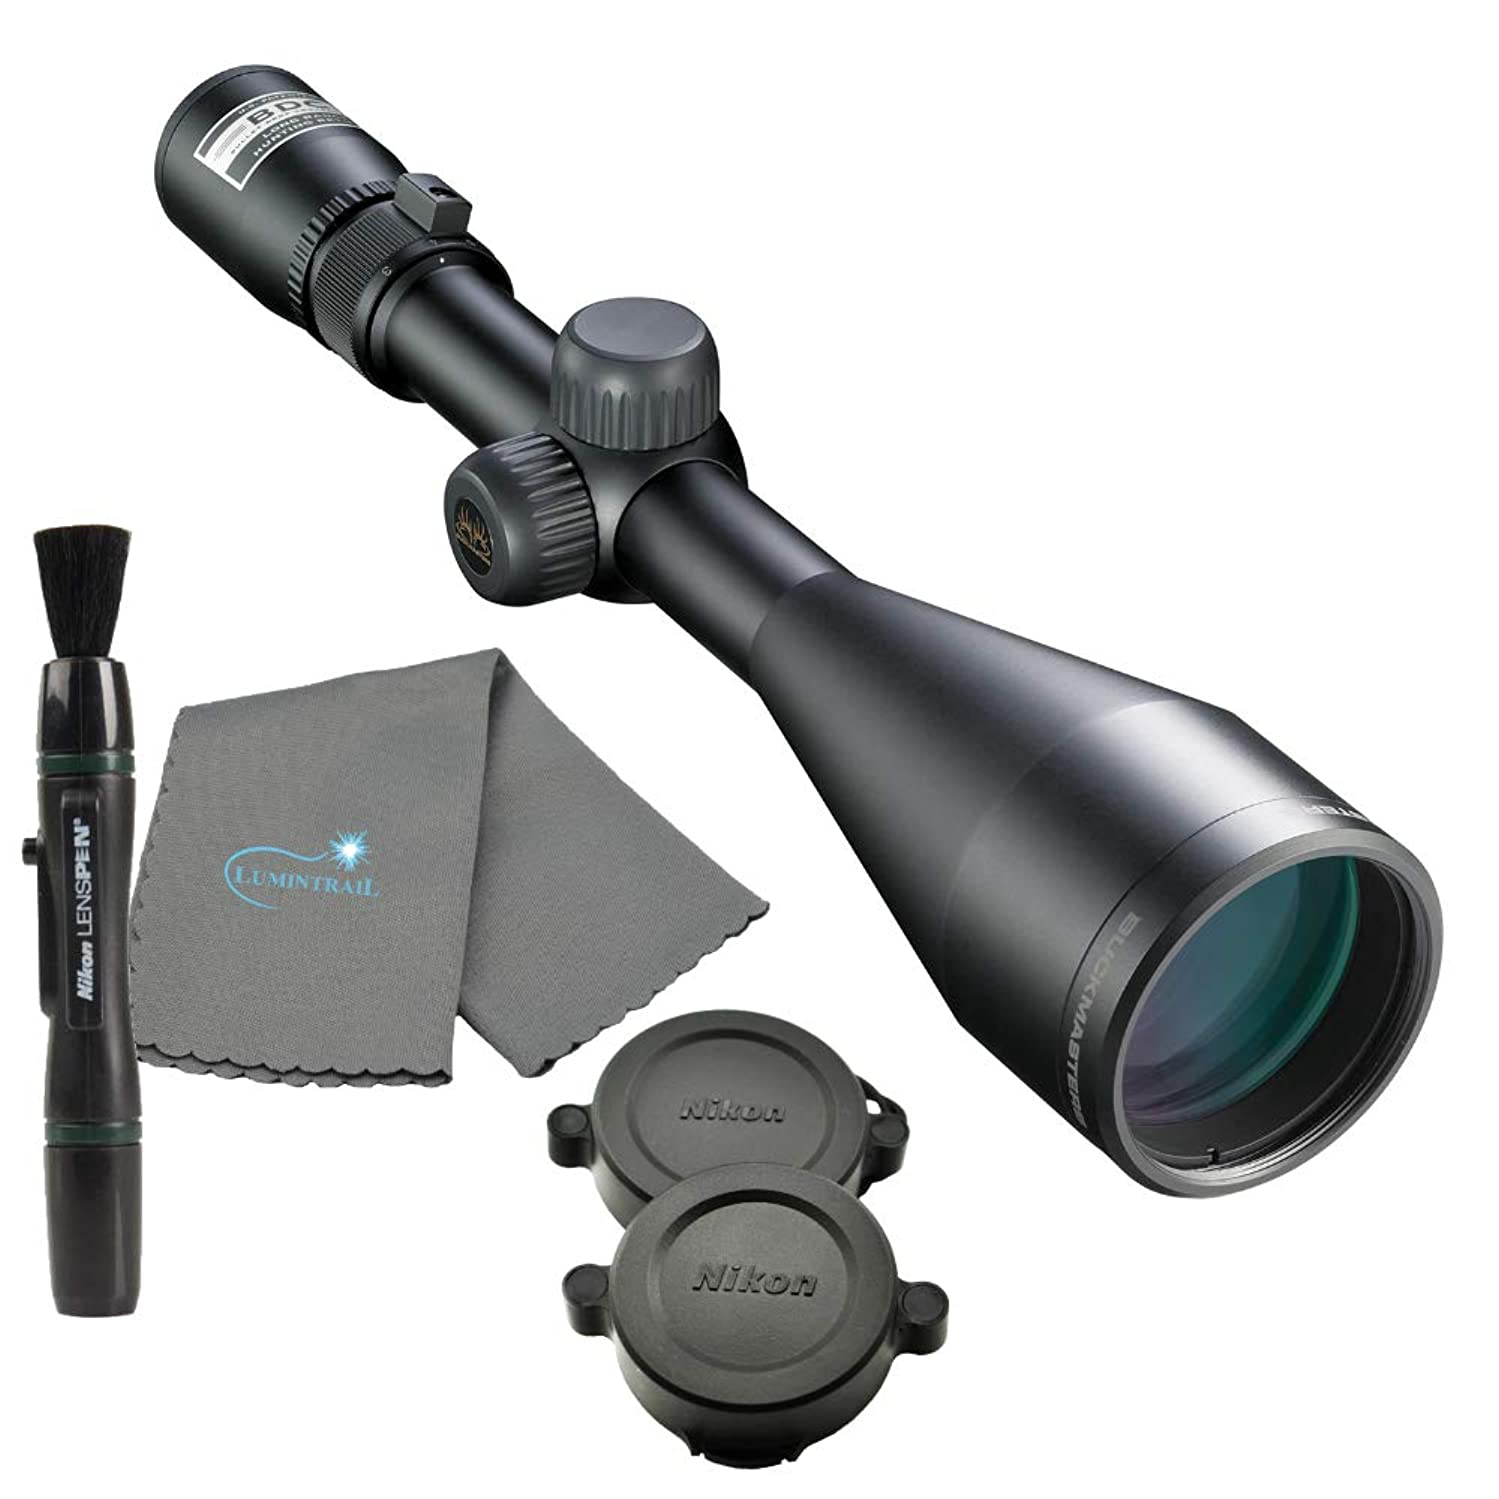 Nikon Buckmaster 3-9x50 Matte BDC Rifle Scope Bundle with a Lens Pen and Lumintrail Microfiber Cleaning Cloth